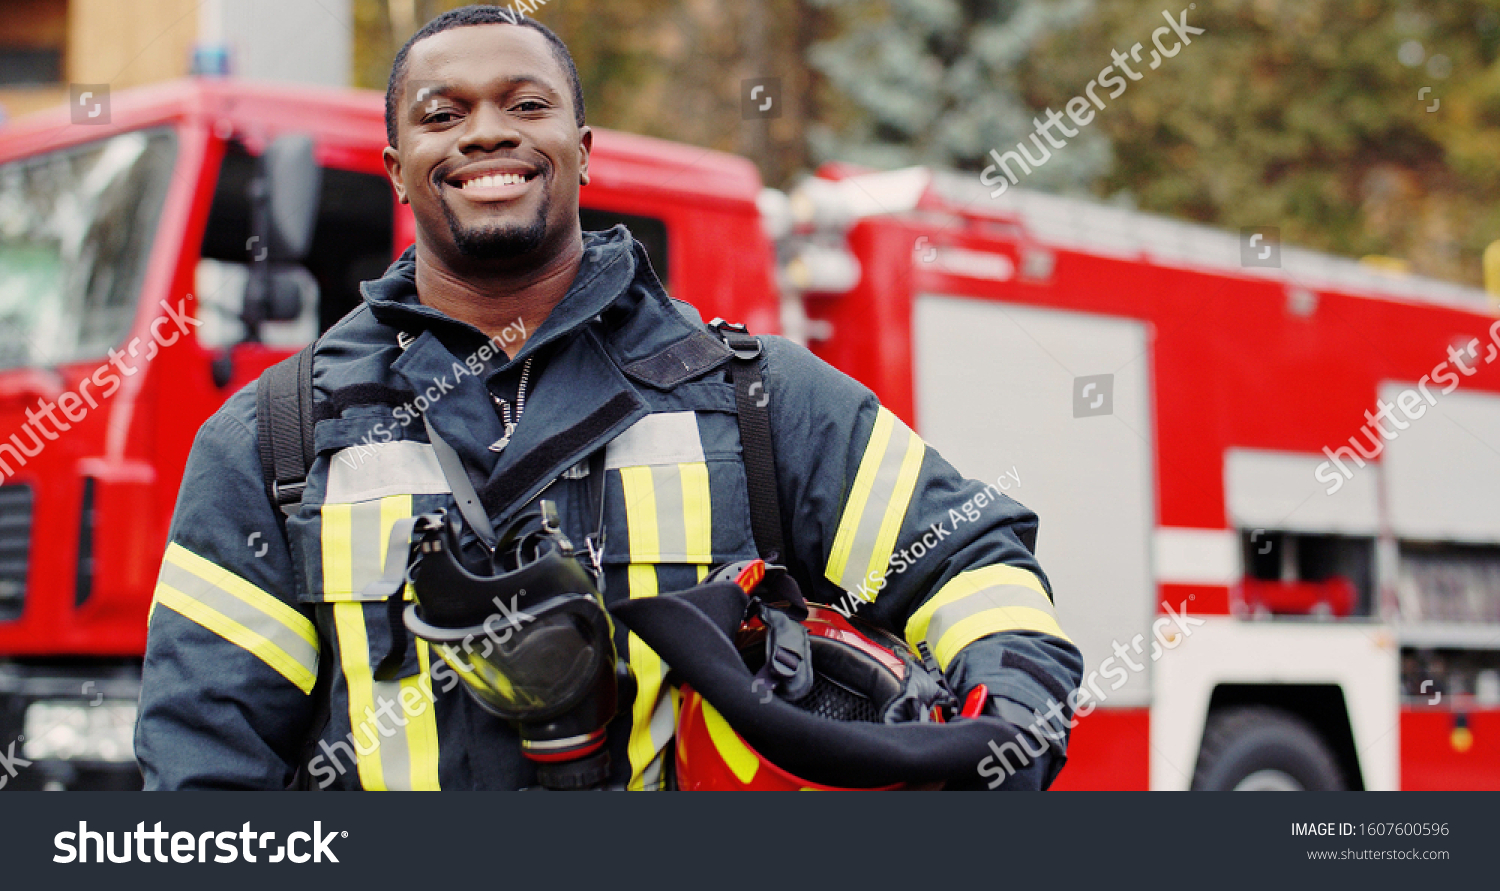 Firefighter portrait on duty. Photo of happy fireman with gas mask and helmet near fire engine #1607600596